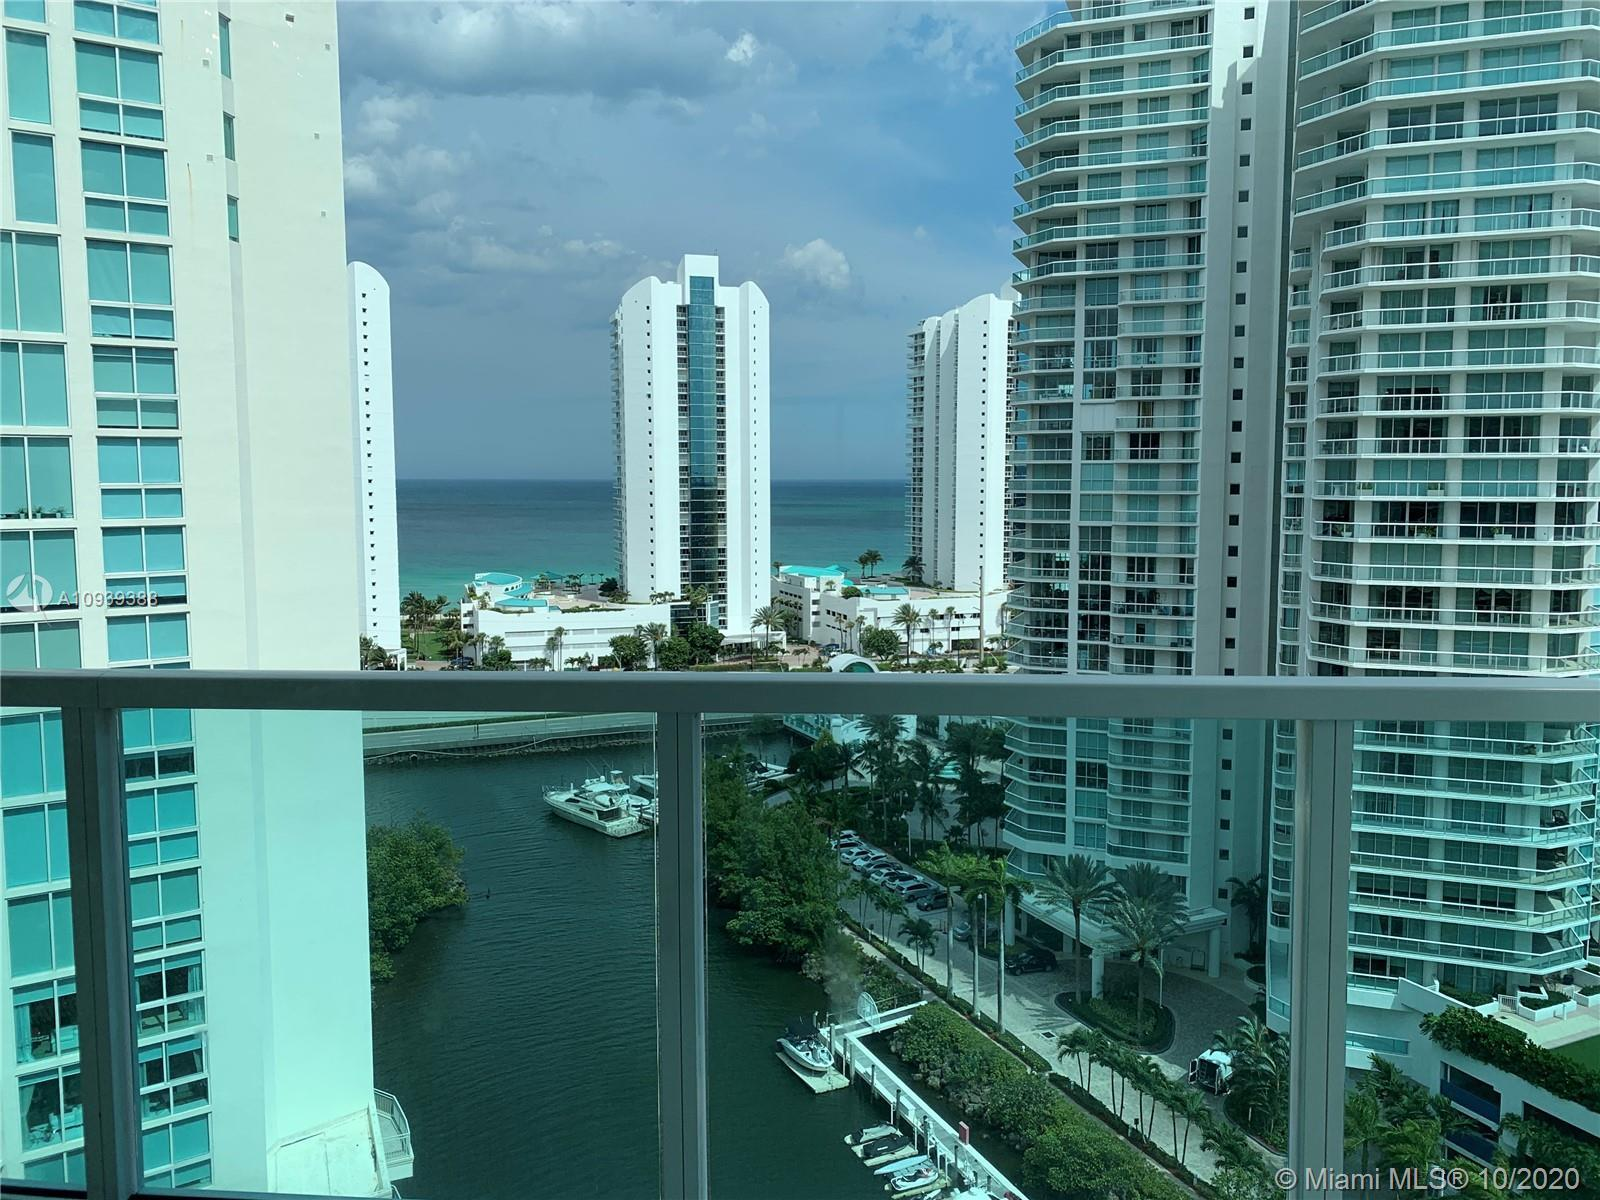 GREAT line with water view! Walking distance to the Beach. Enjoy the Lifestyle of the Sunny Isles Be